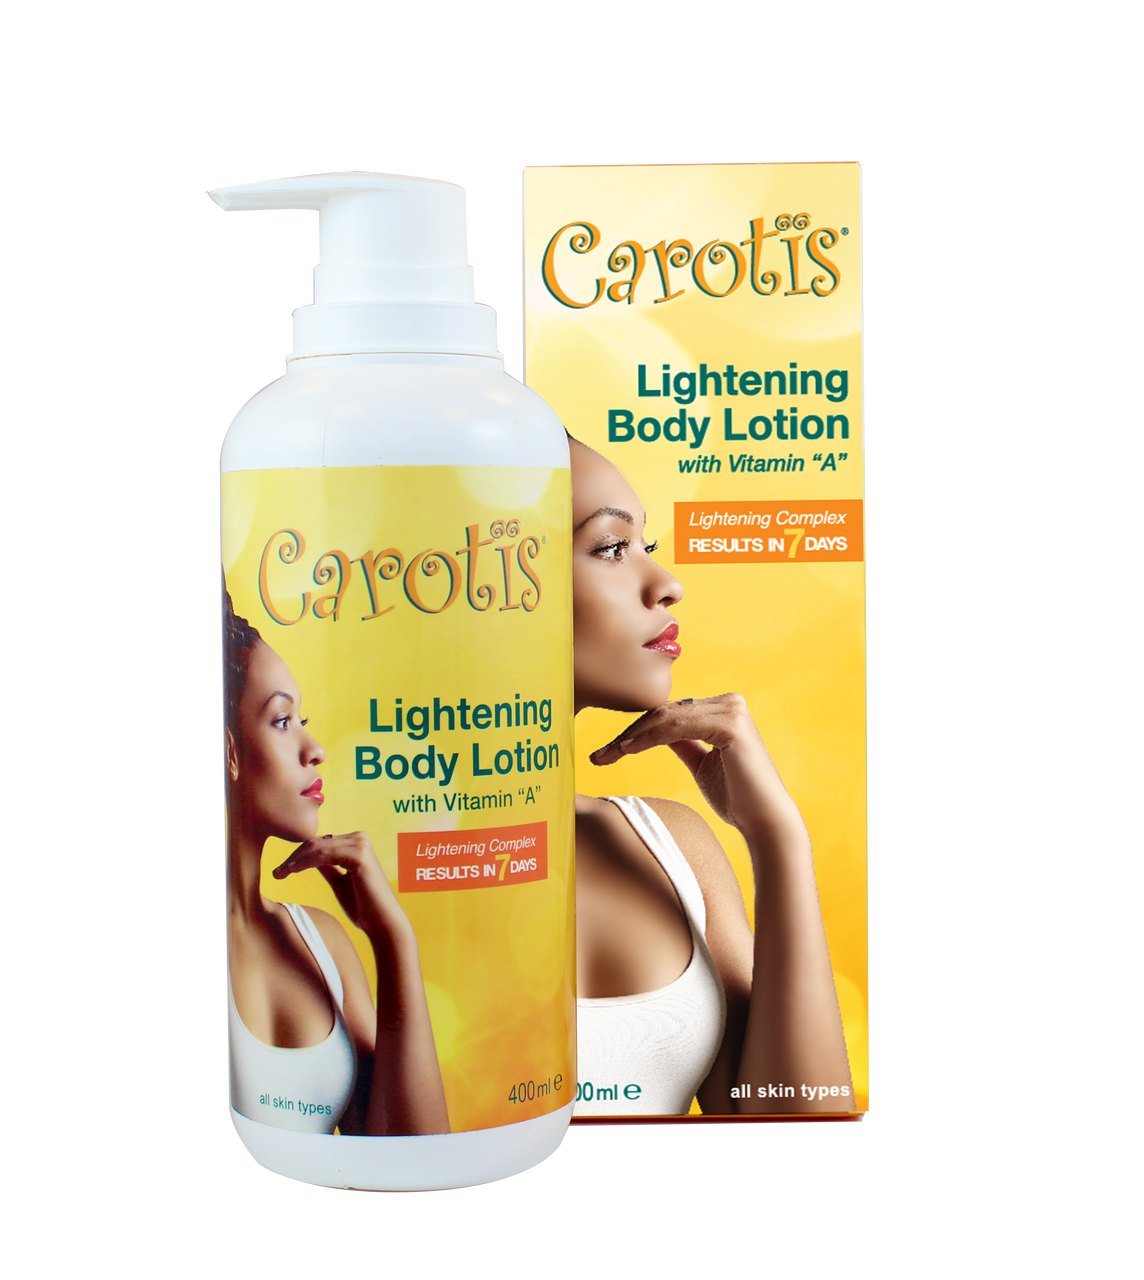 Carotis Lightening Body Lotion Results In 7 Days W Vitamin A